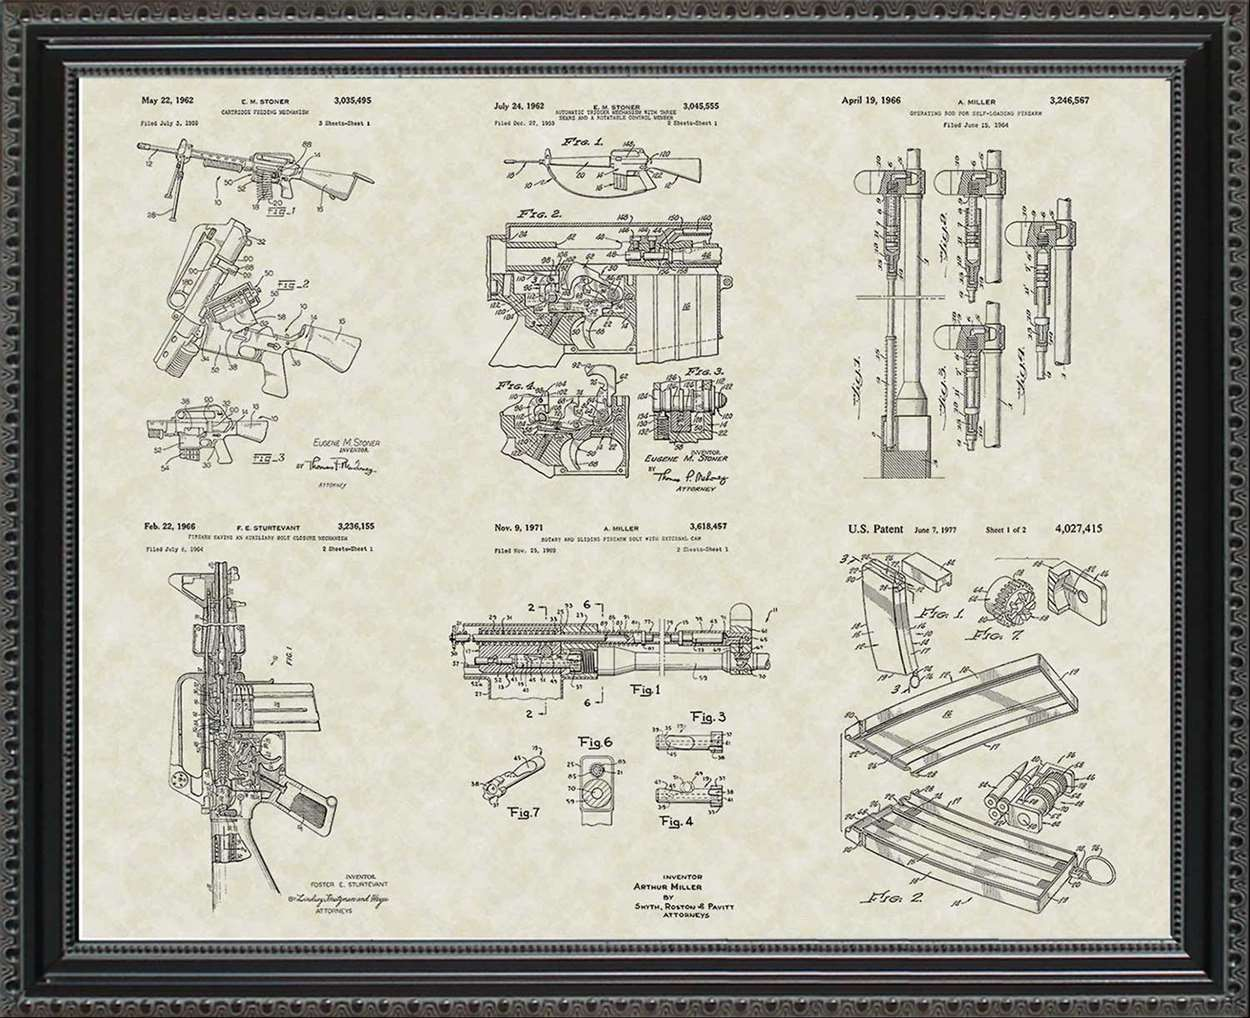 M-16 Military Rifle Patents, 20x24